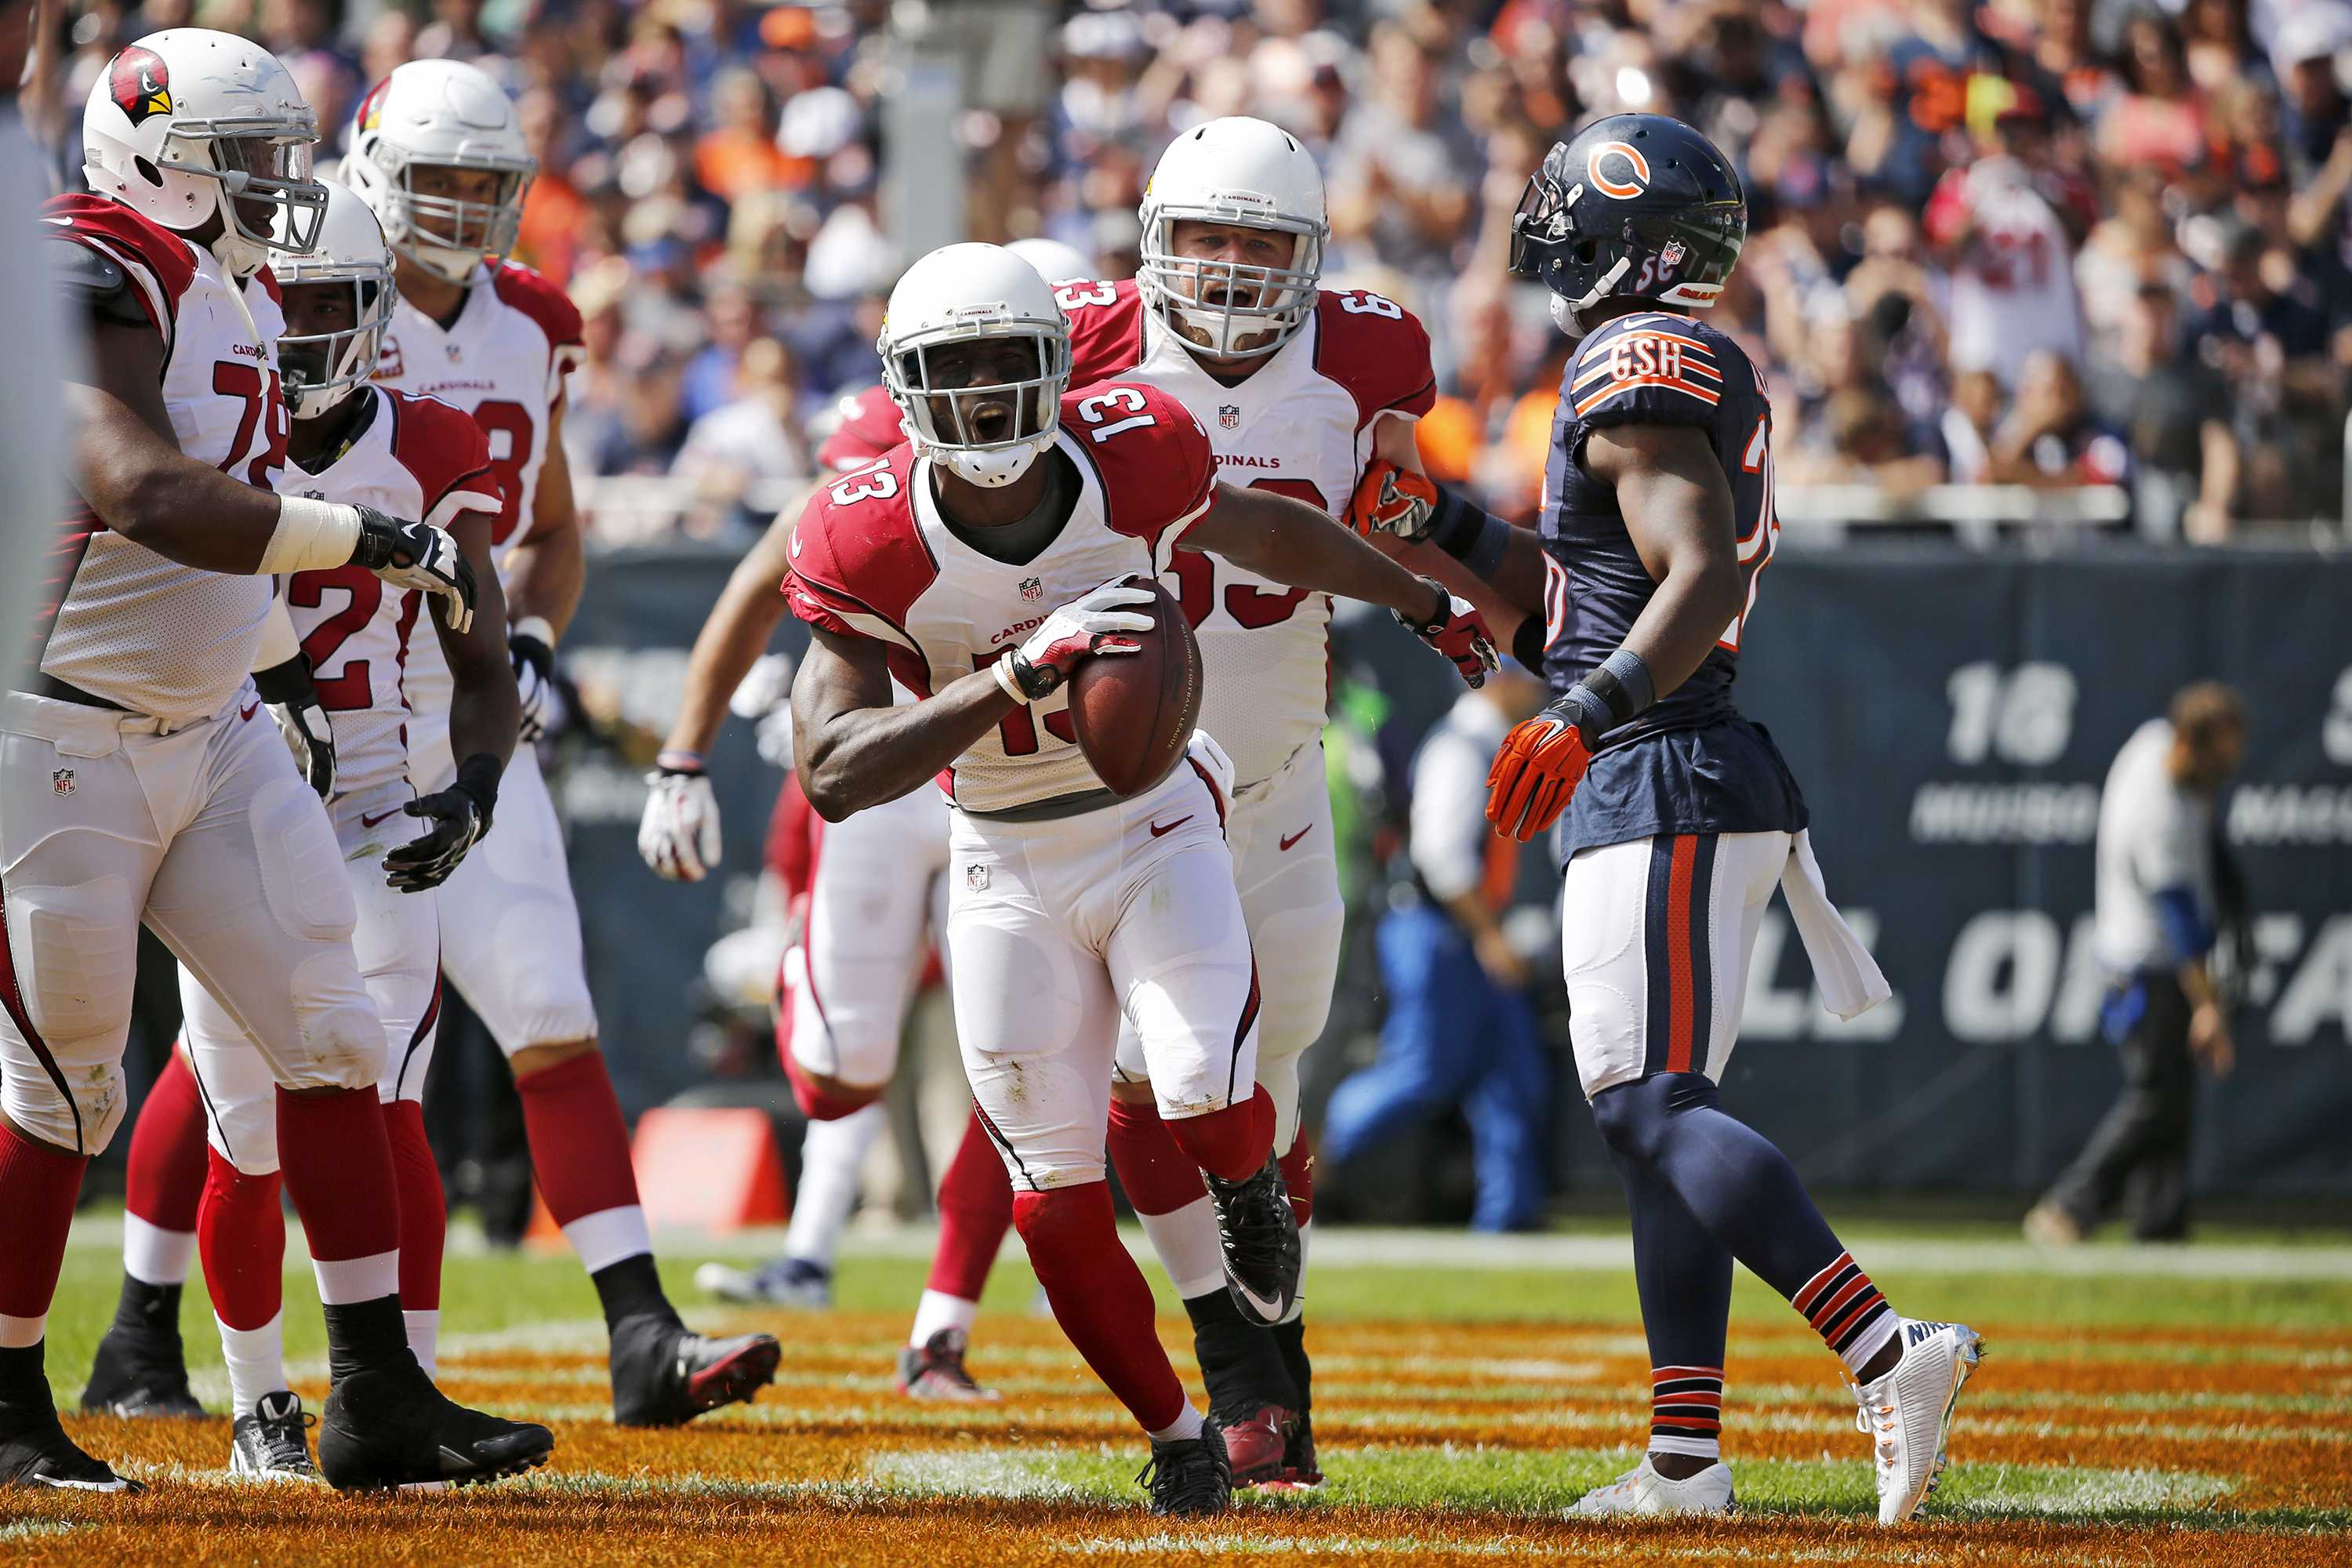 Arizona Cardinals wide receiver Jaron Brown (13) celebrates a touchdown run against the Chicago Bears during the first quarter on Sunday, Sept. 20, 2015, at Soldier Field in Chicago. (Jose M. Osorio/Chicago Tribune/TNS)